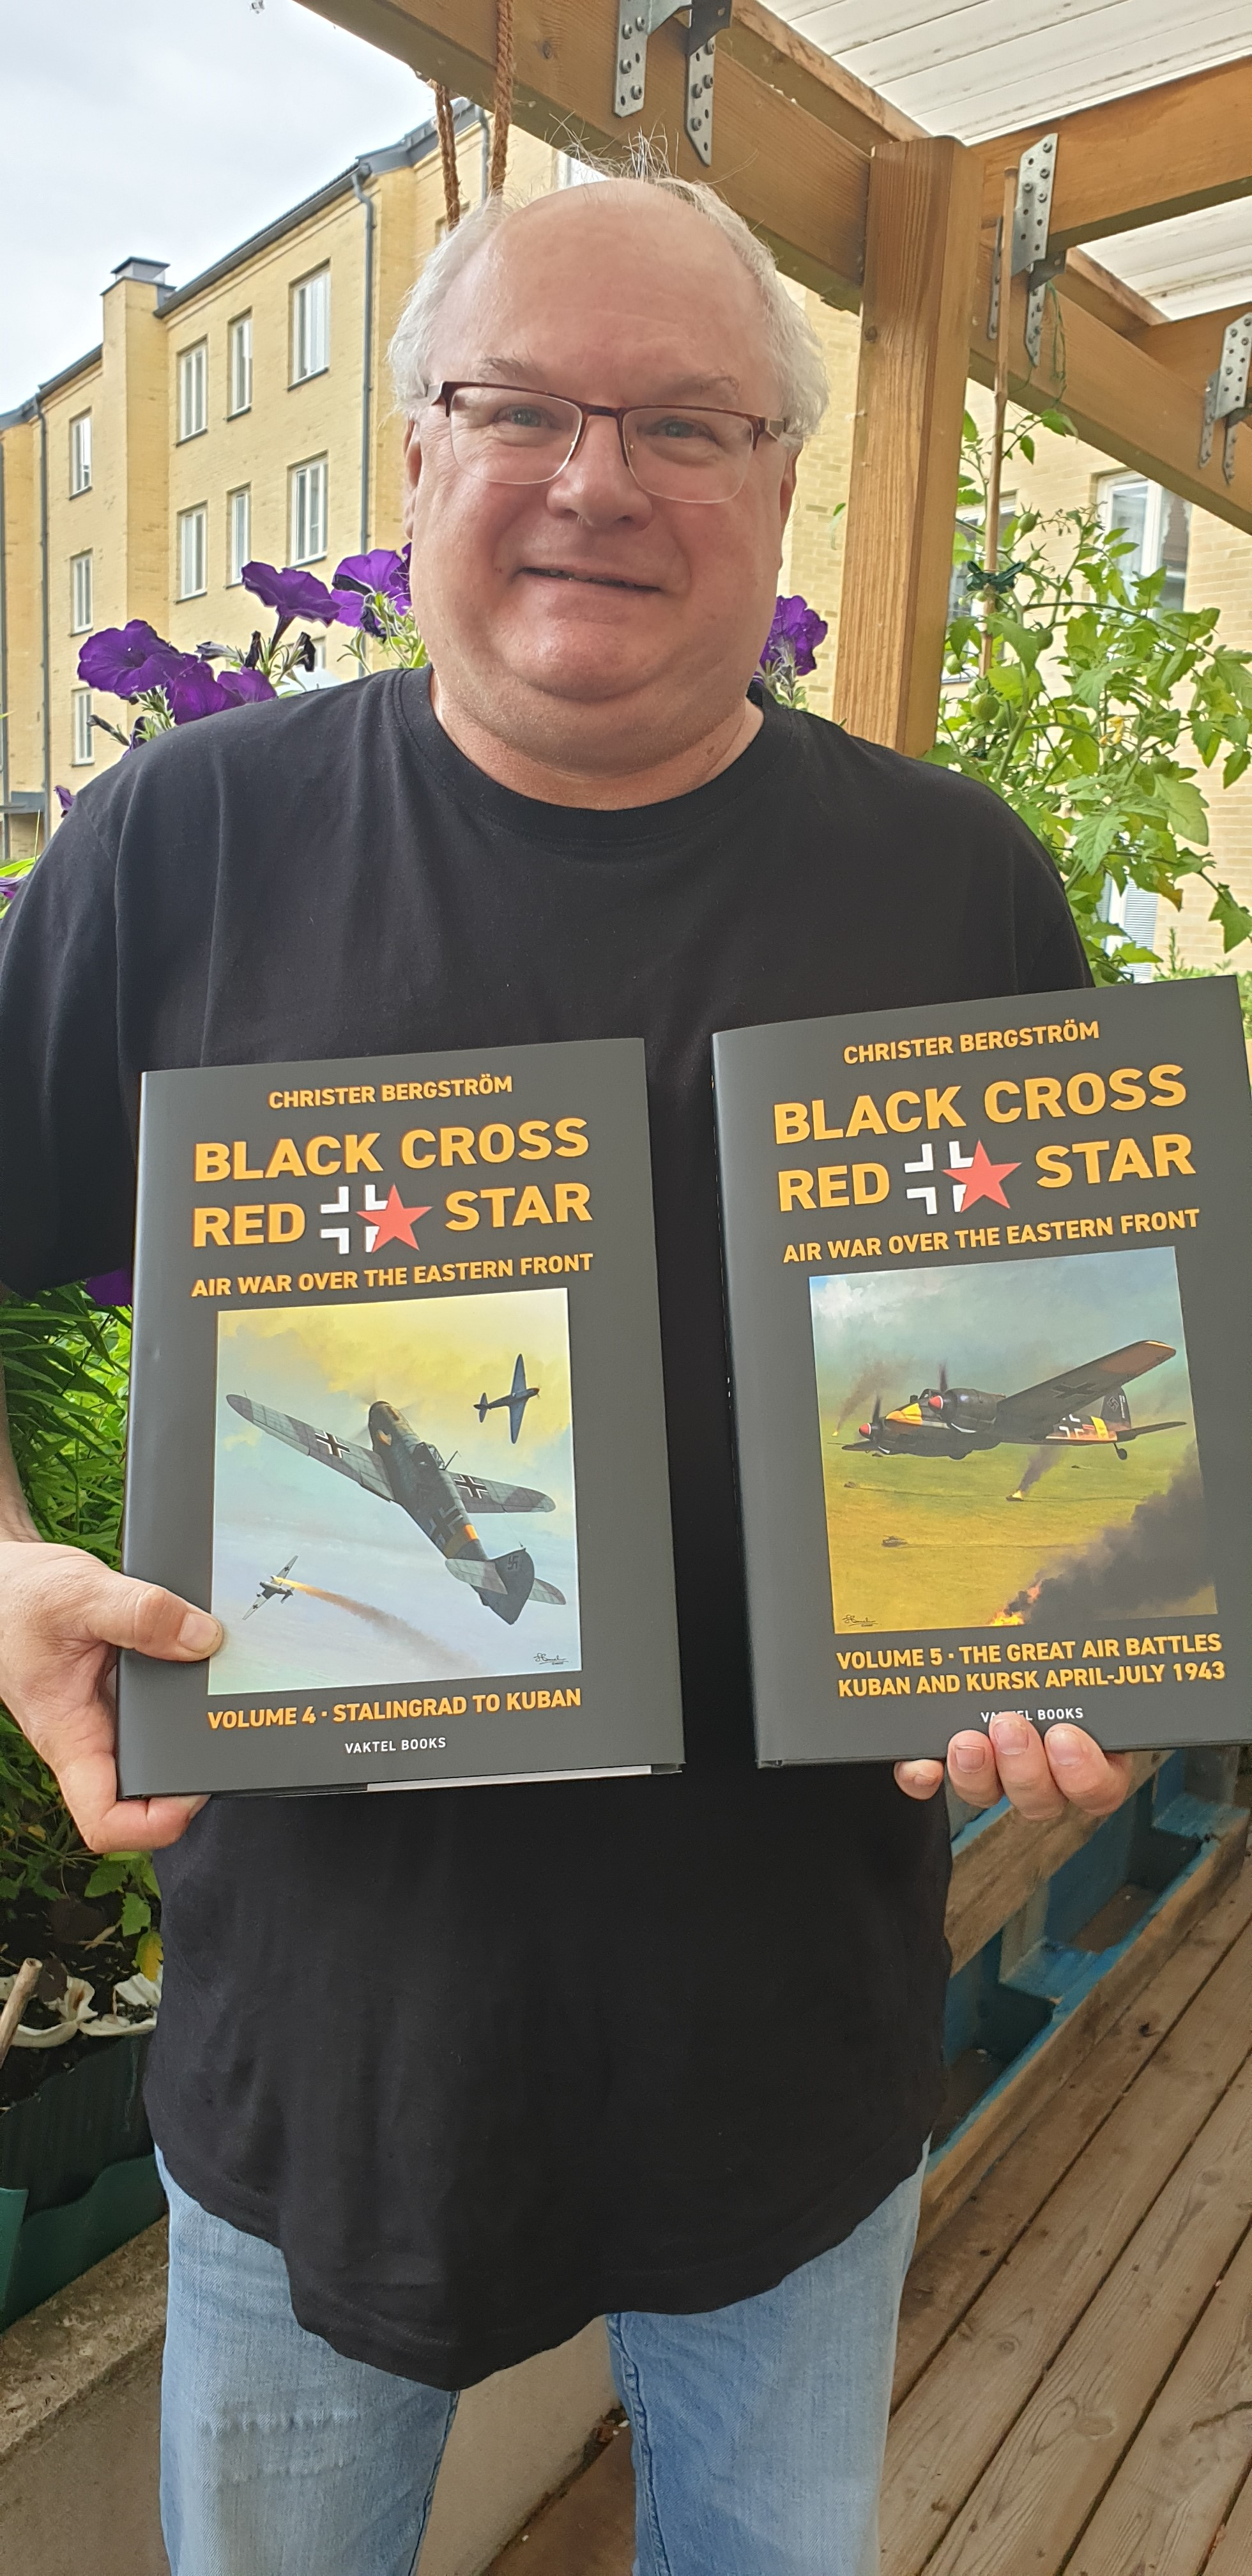 Black Cross Red Star: Air War over the Eastern Front, Vol. 5: Kuban and Kursk har kommit!